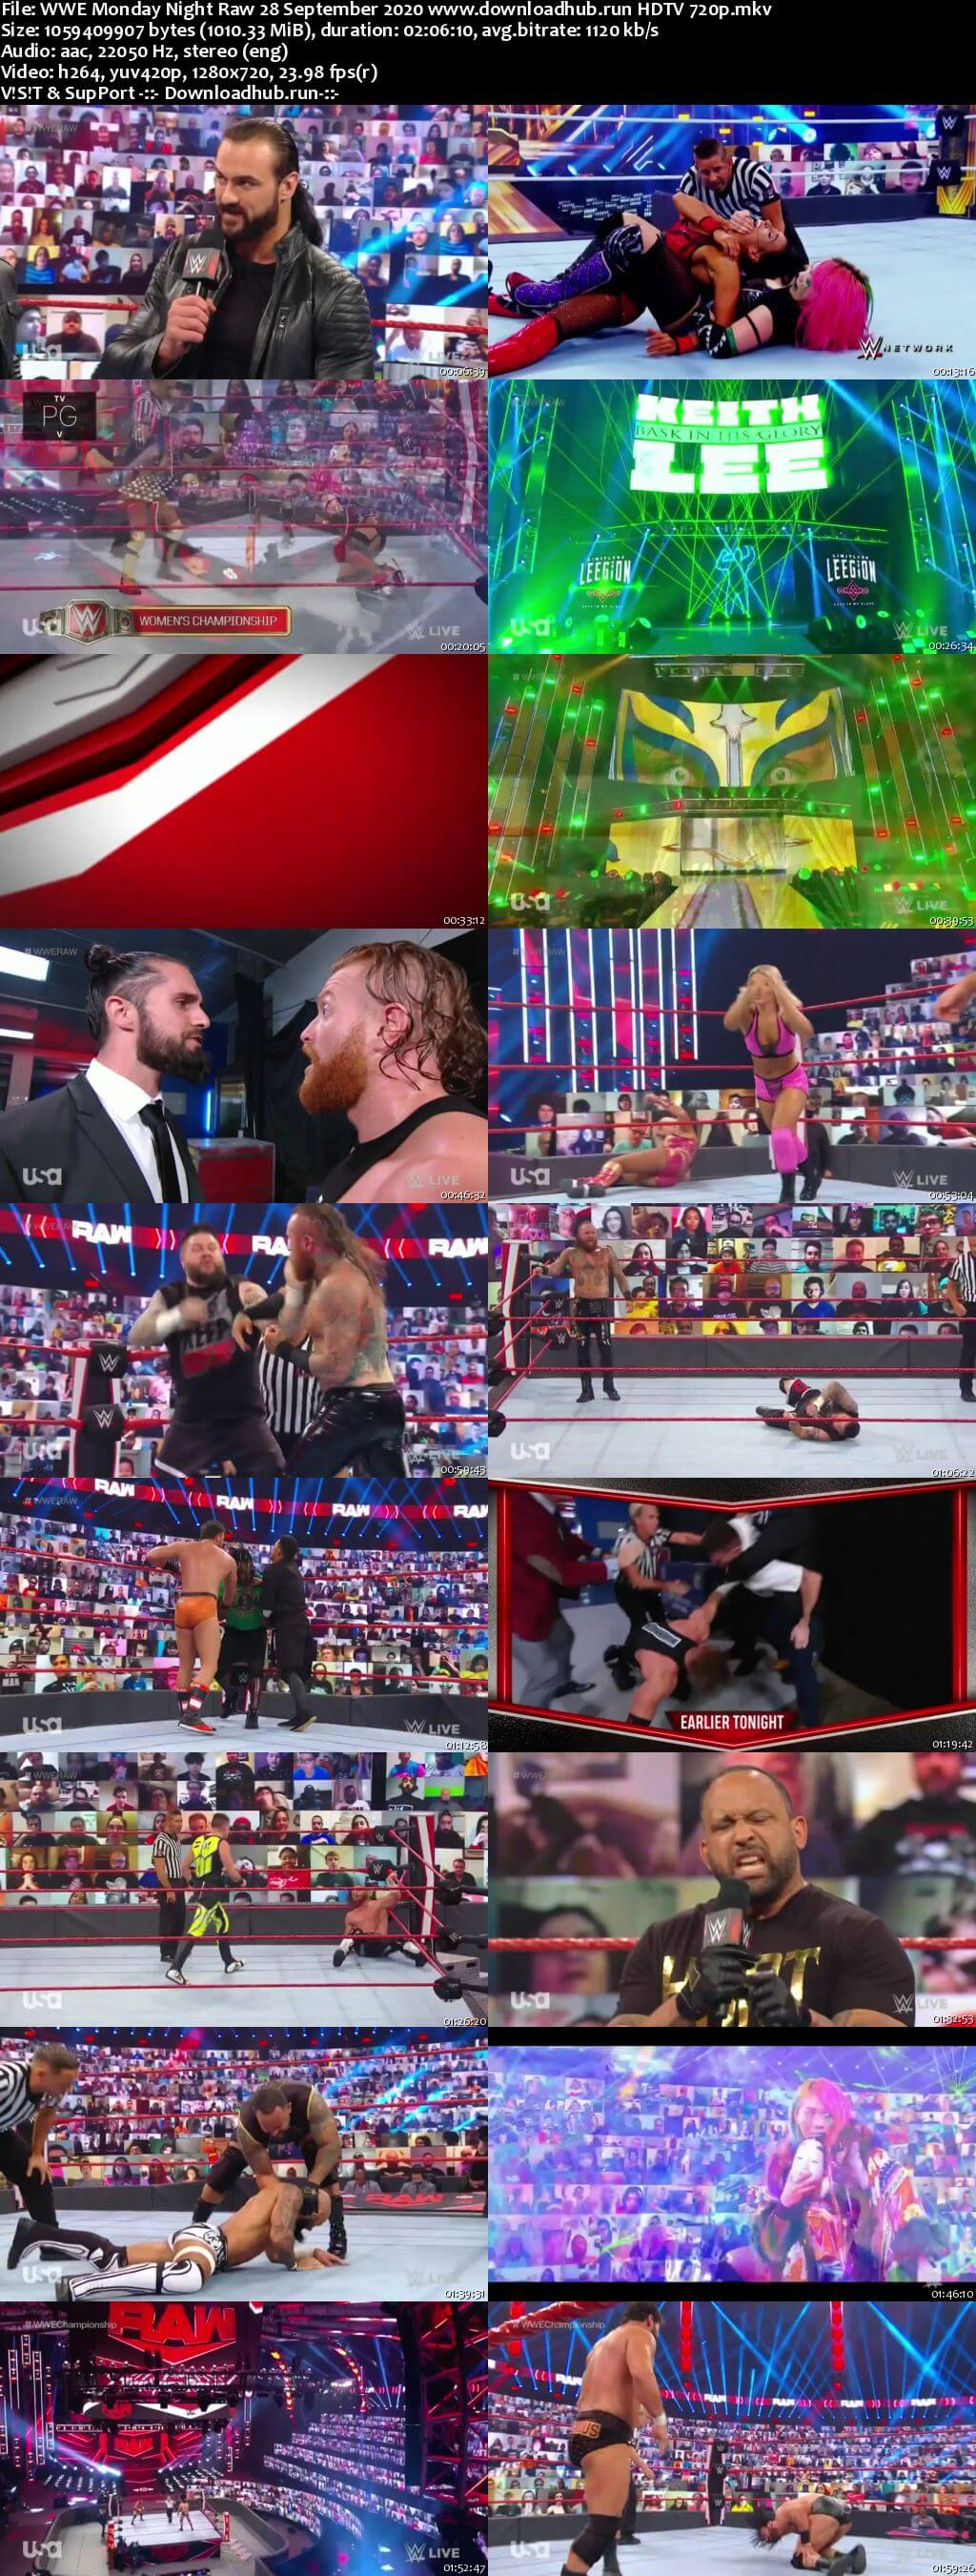 WWE Monday Night Raw 28th September 2020 720p 500MB HDTVRip 480p